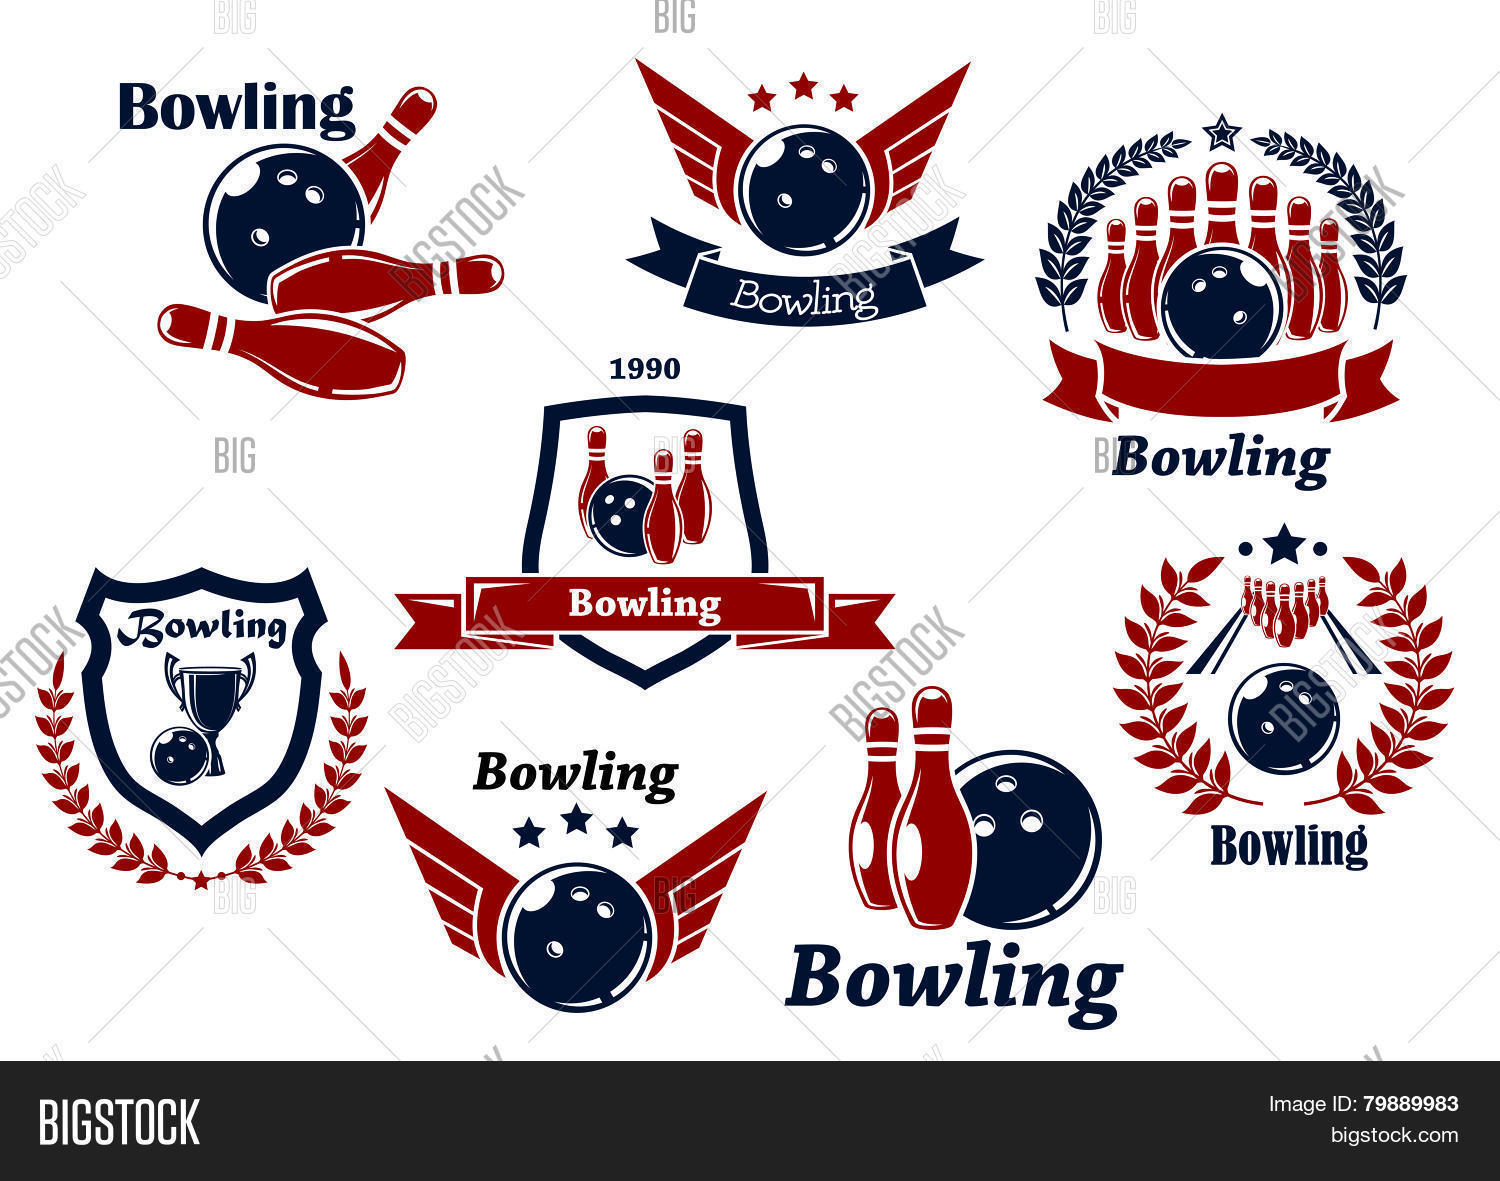 Bowling Sports Vector Photo Free Trial Bigstock